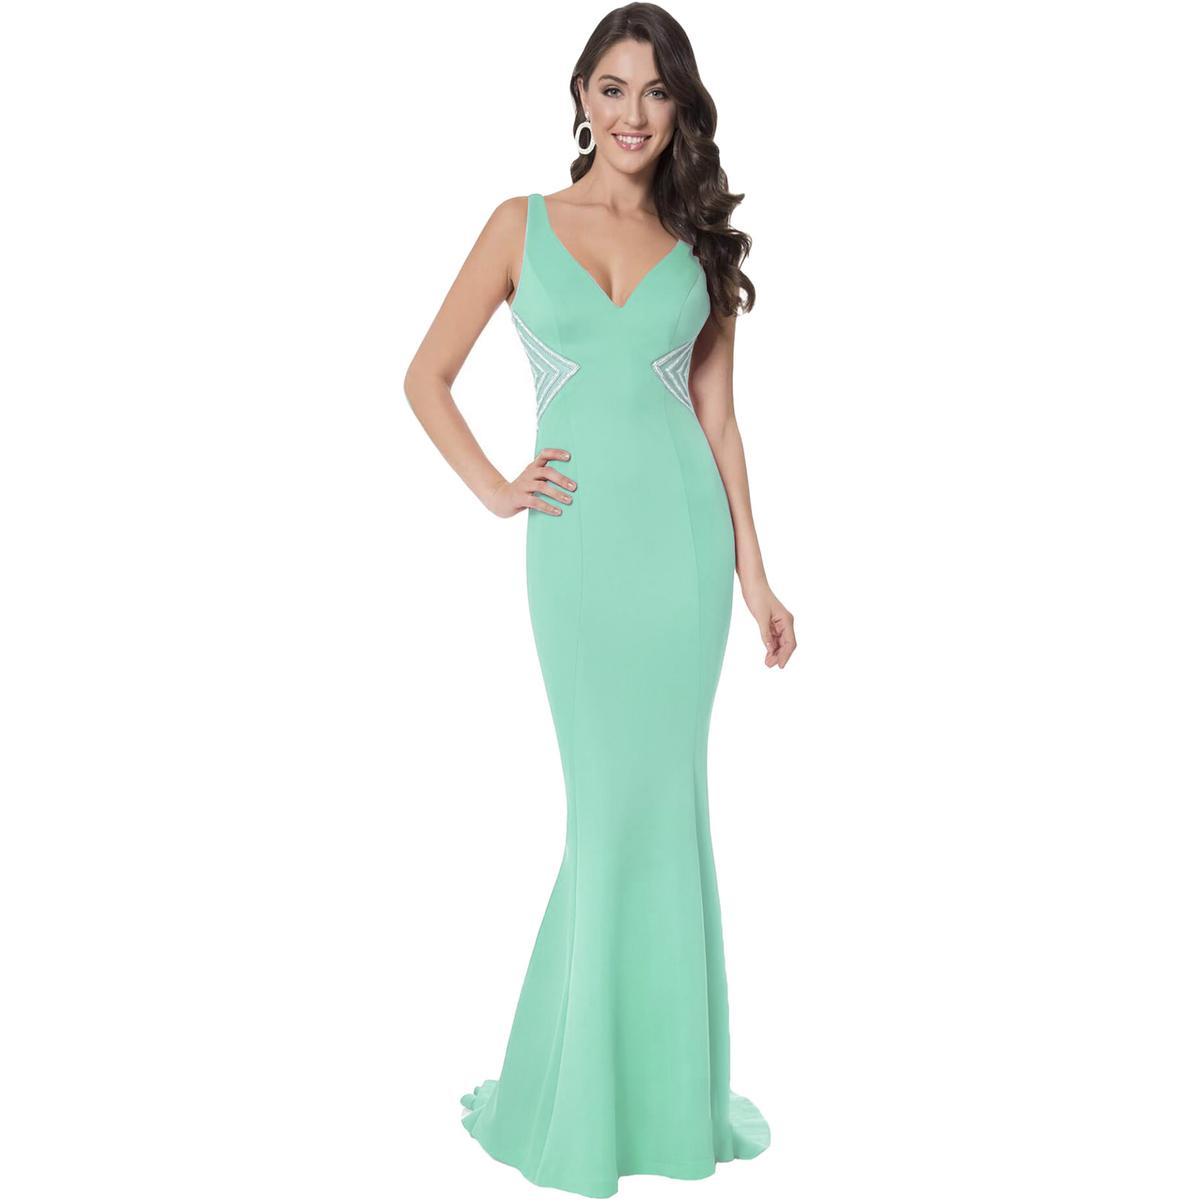 bbef4d9dfb3 Details about Terani Couture Beaded Illusion Promt Formal Dress Gown BHFO  9966